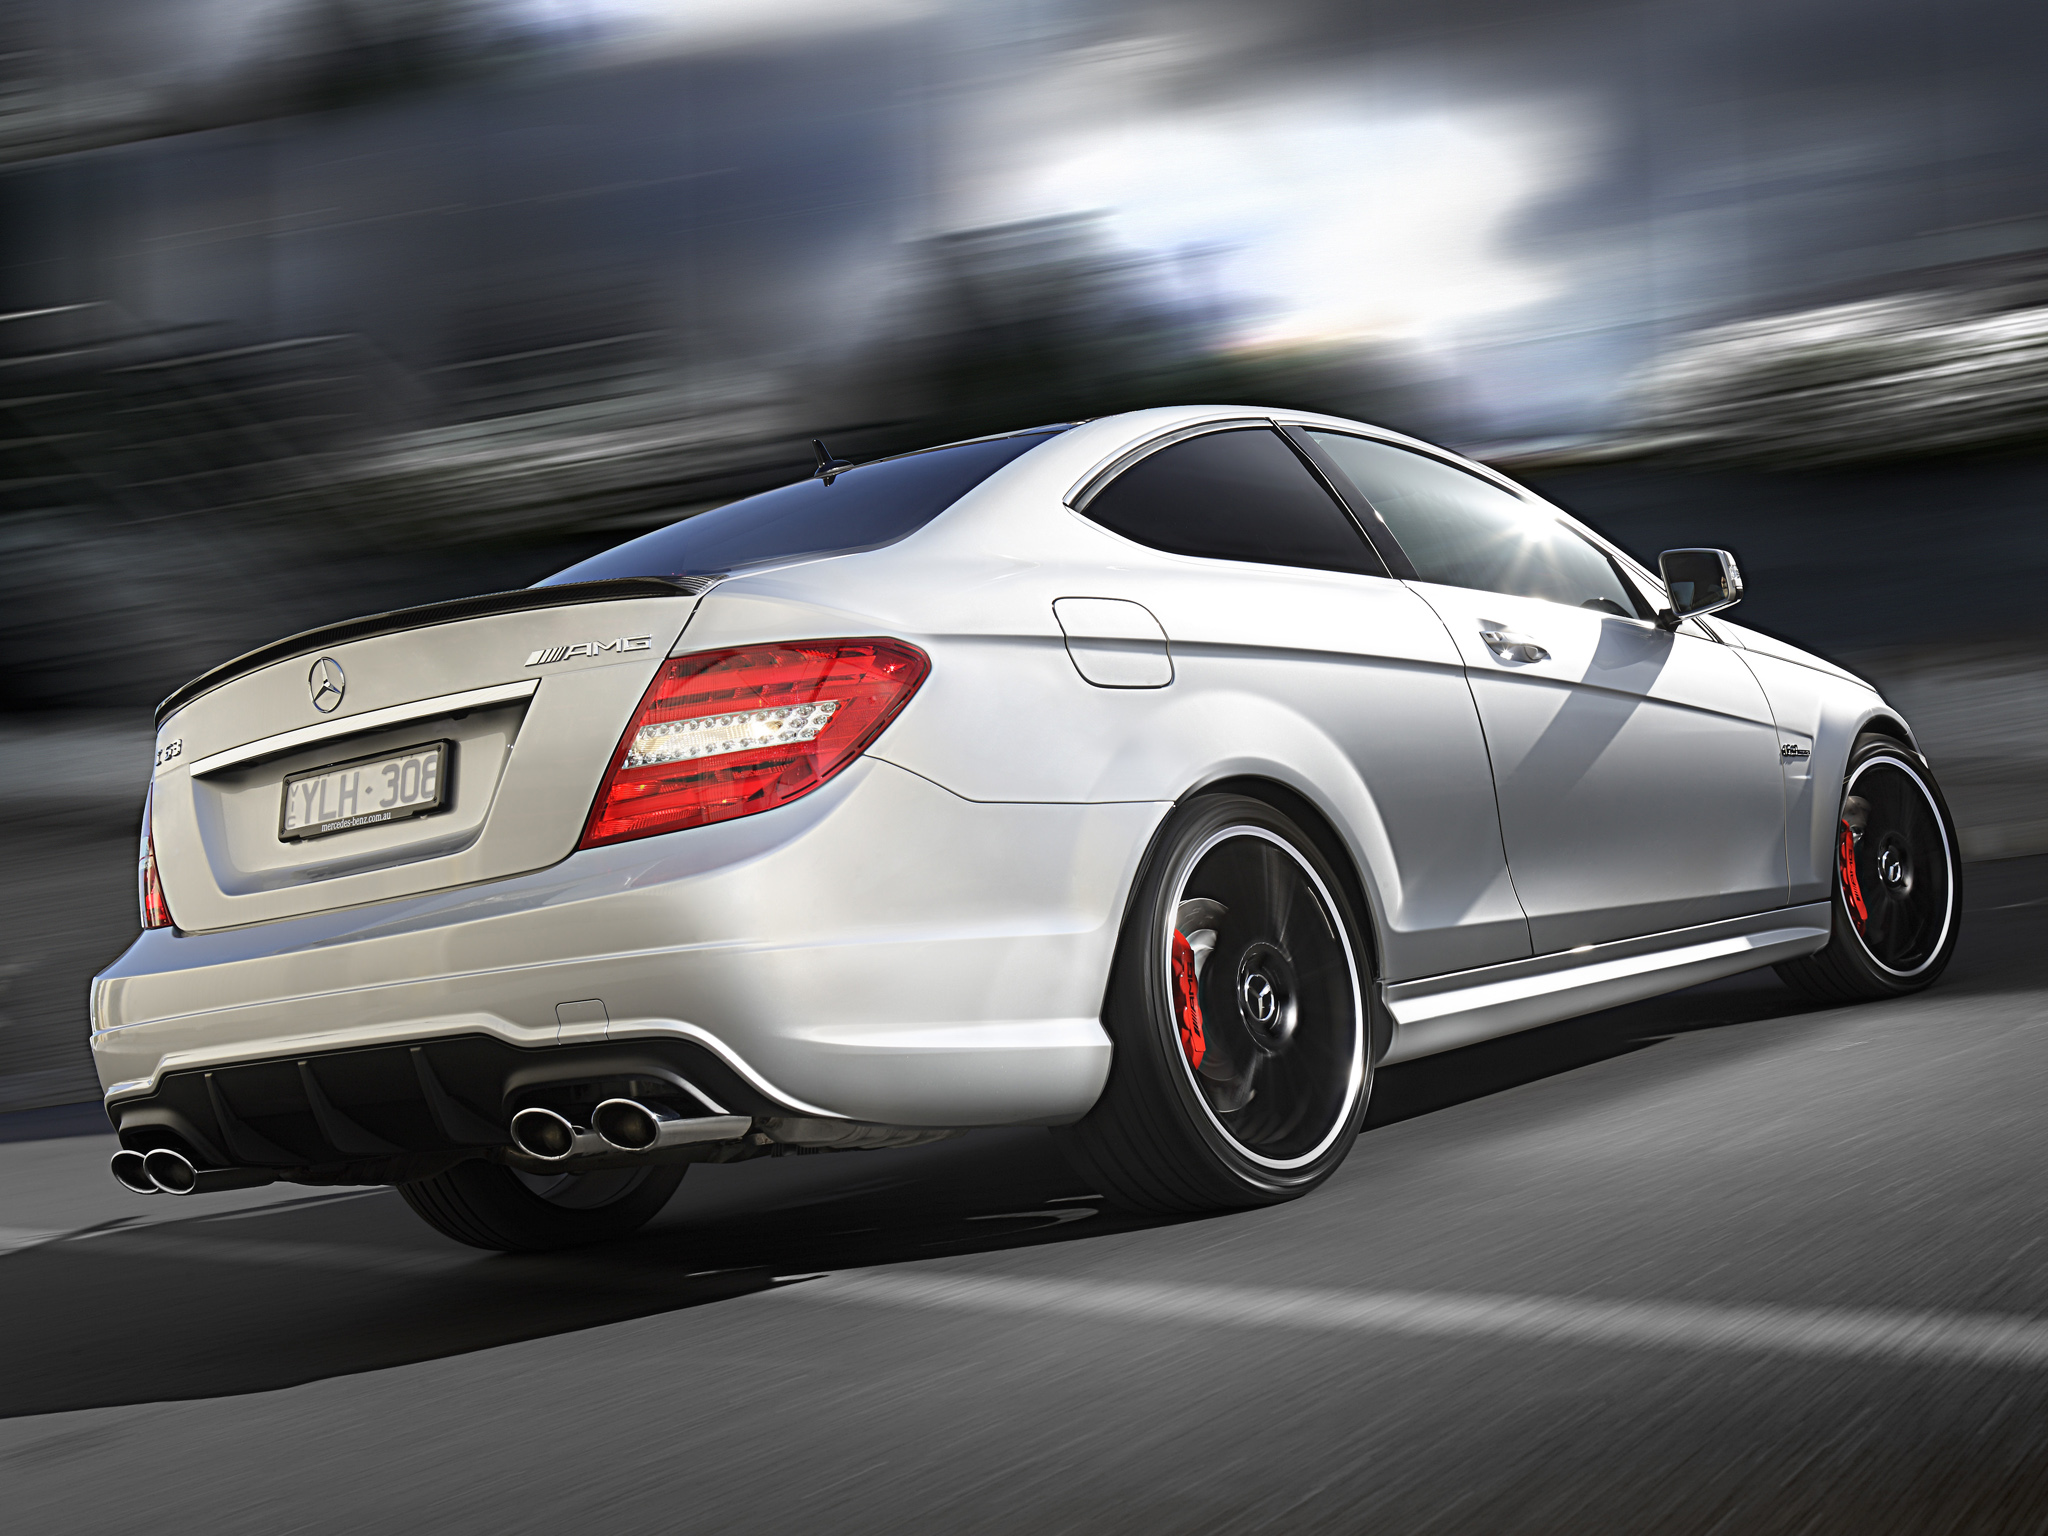 Mercedes-Benz C63 AMG Coupe photo 96462